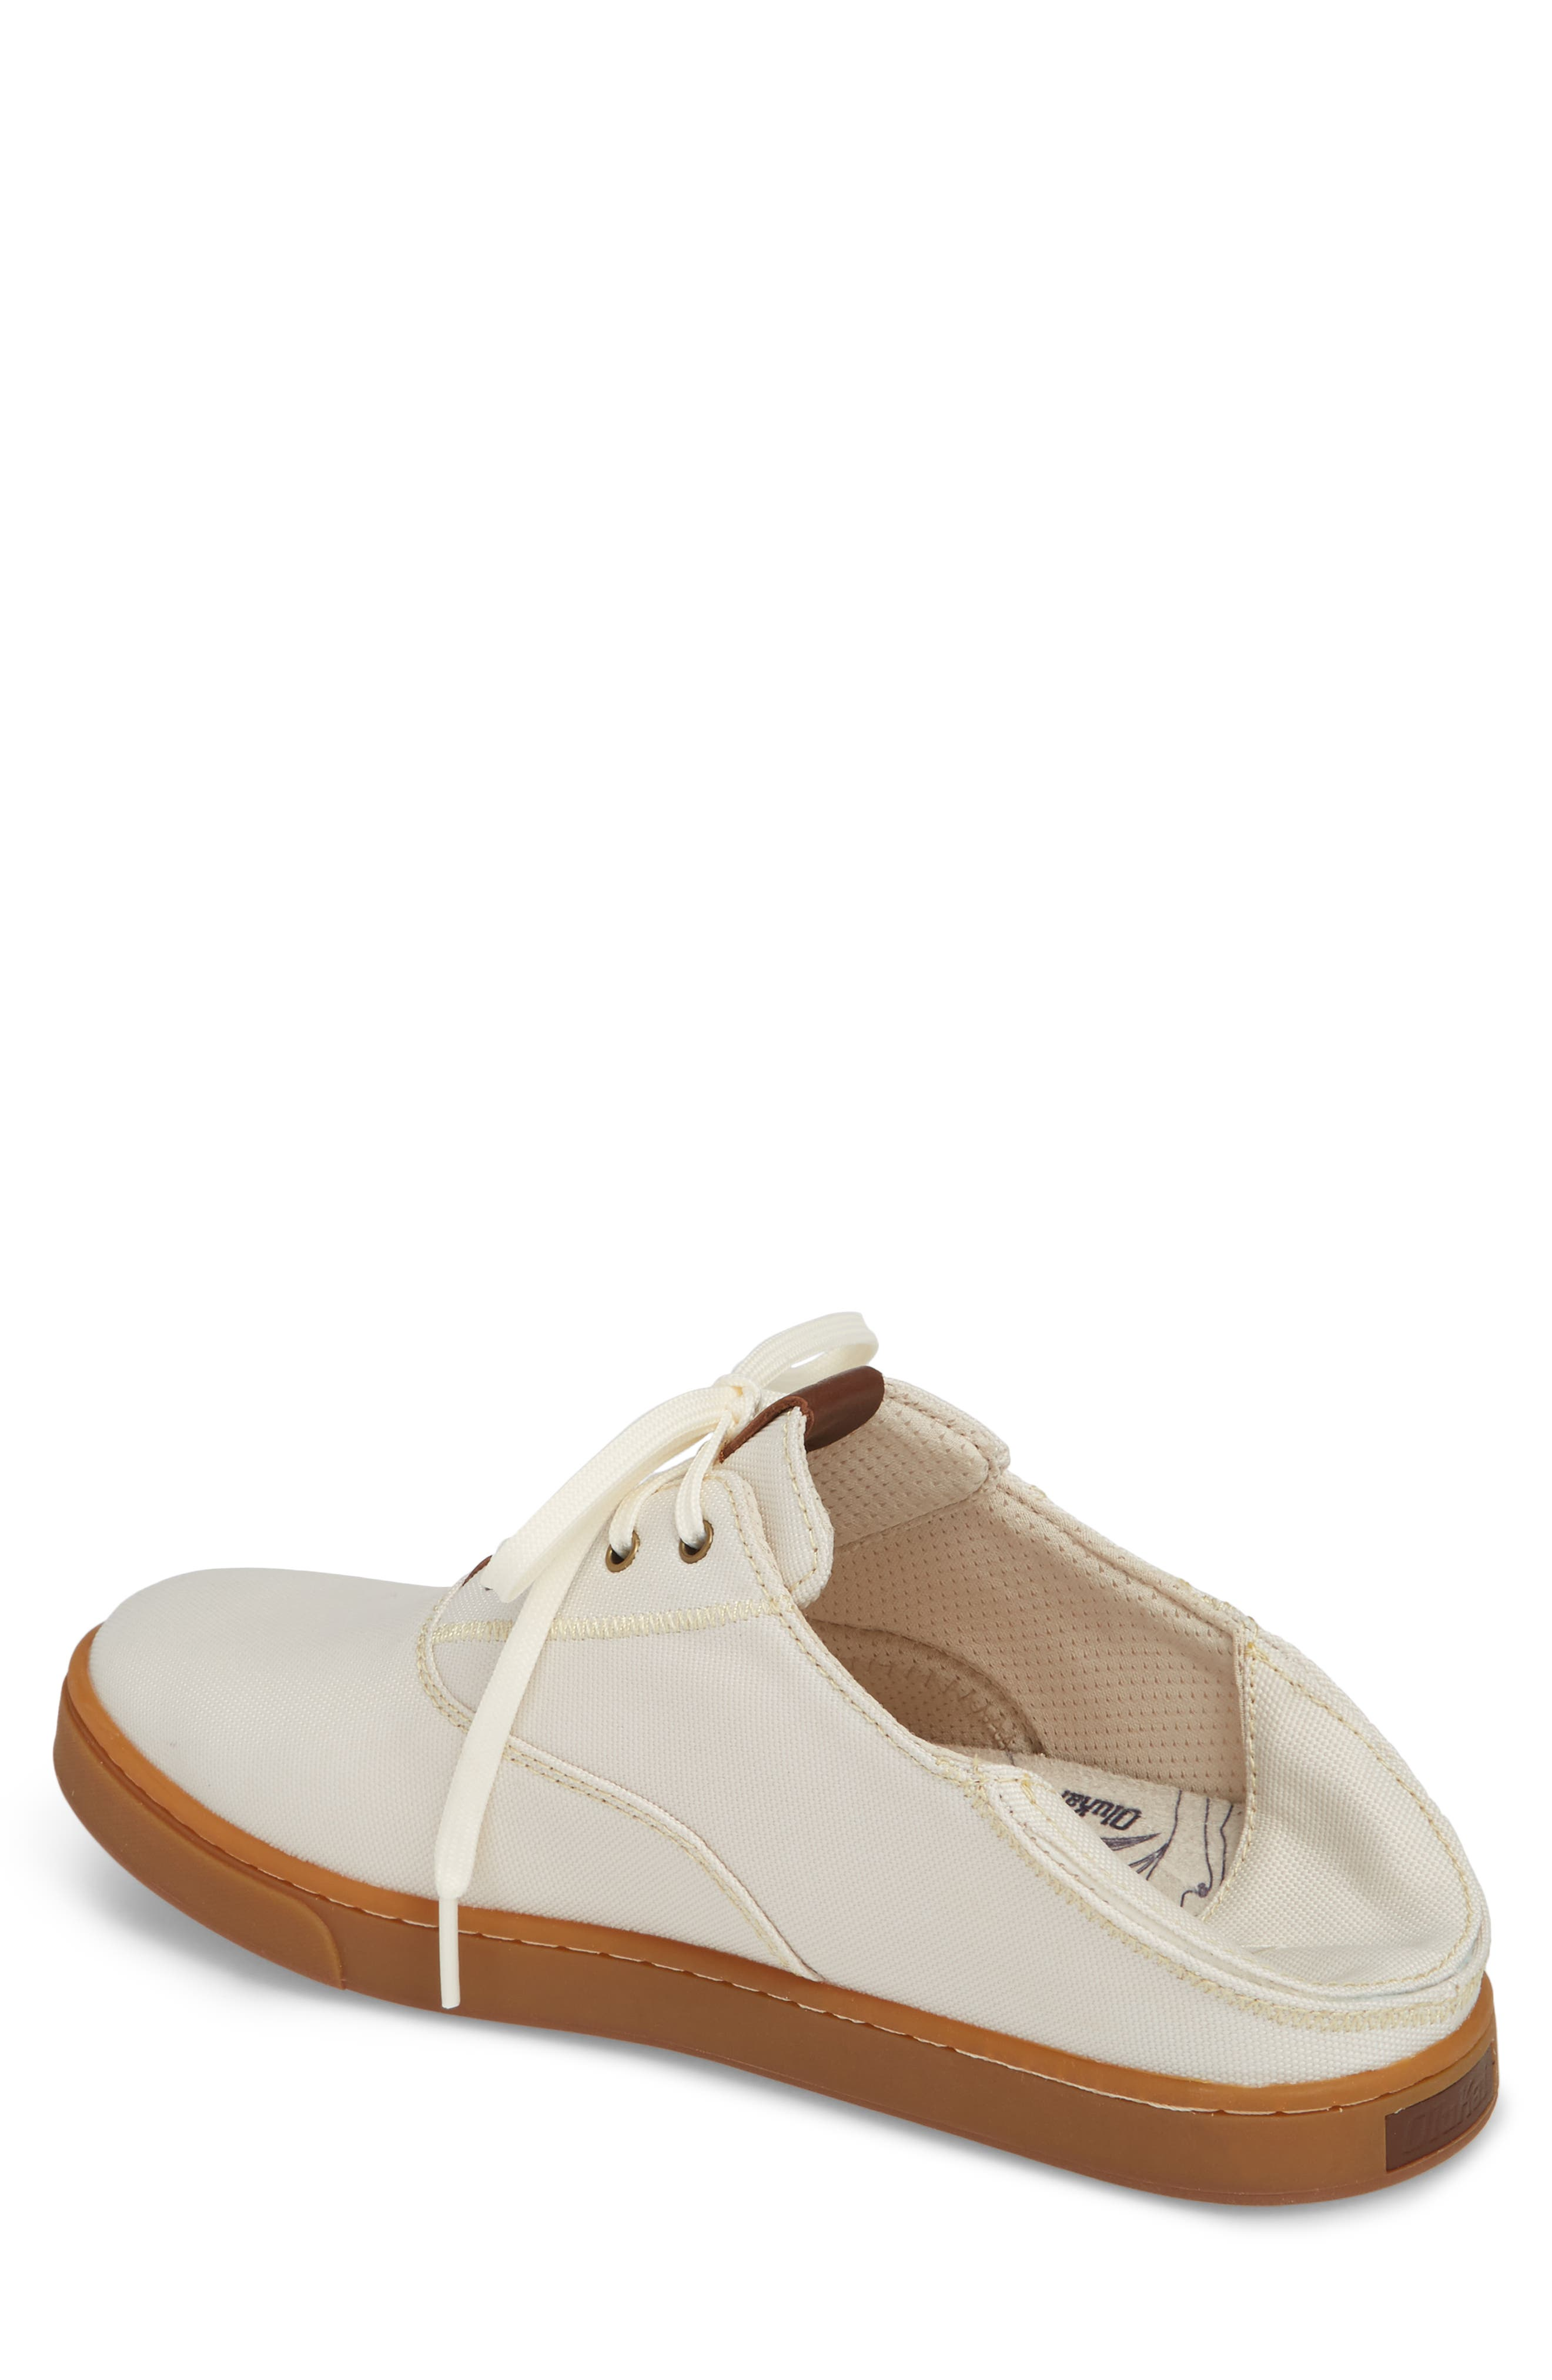 Kahu Collapsible Lace-Up Sneaker,                             Alternate thumbnail 3, color,                             OFF WHITE/ TOFFEE